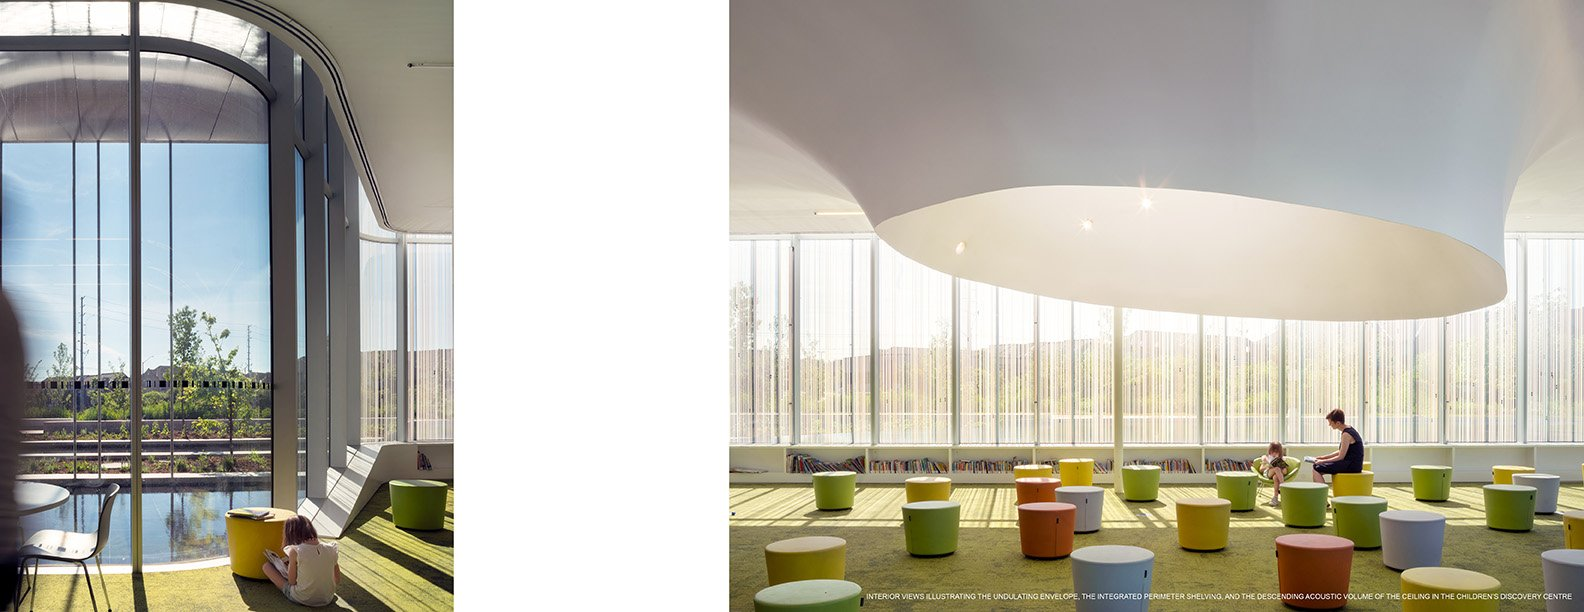 INTERIOR VIEWS ILLUSTRATING THE UNDULATING ENVELOPE, THE INTEGRATED PERIMETER SHELVING, AND THE DESCENDING ACOUSTIC VOLUME OF THE CEILING IN THE CHILDREN'S DISCOVERY CENTR Nic Lehoux